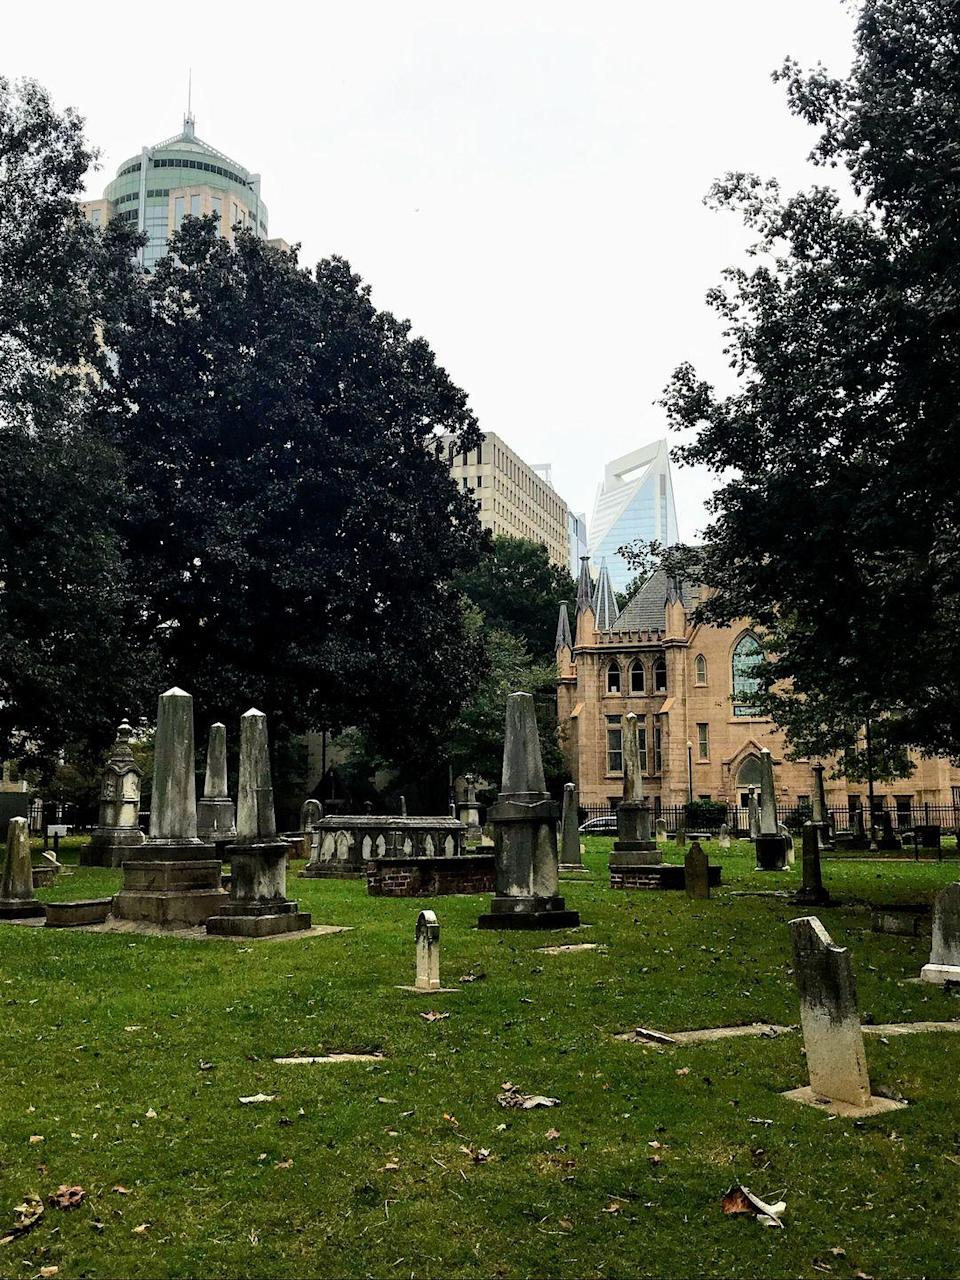 """<p>From historic homes, to haunted graveyards, to old medical institutions, this 90-minute evening stroll through Charlotte's Fourth Ward is sure to leave you with nightmares. </p><p><a class=""""link rapid-noclick-resp"""" href=""""https://go.redirectingat.com?id=74968X1596630&url=https%3A%2F%2Fwww.tripadvisor.com%2FAttractionProductReview-g49022-d11474988-Charlotte_Beyond_the_Grave_Haunted_History_Walking_Ghost_Tour-Charlotte_North_Carol.html&sref=https%3A%2F%2Fwww.redbookmag.com%2Flife%2Fg37623207%2Fghost-tours-near-me%2F"""" rel=""""nofollow noopener"""" target=""""_blank"""" data-ylk=""""slk:LEARN MORE"""">LEARN MORE</a></p>"""